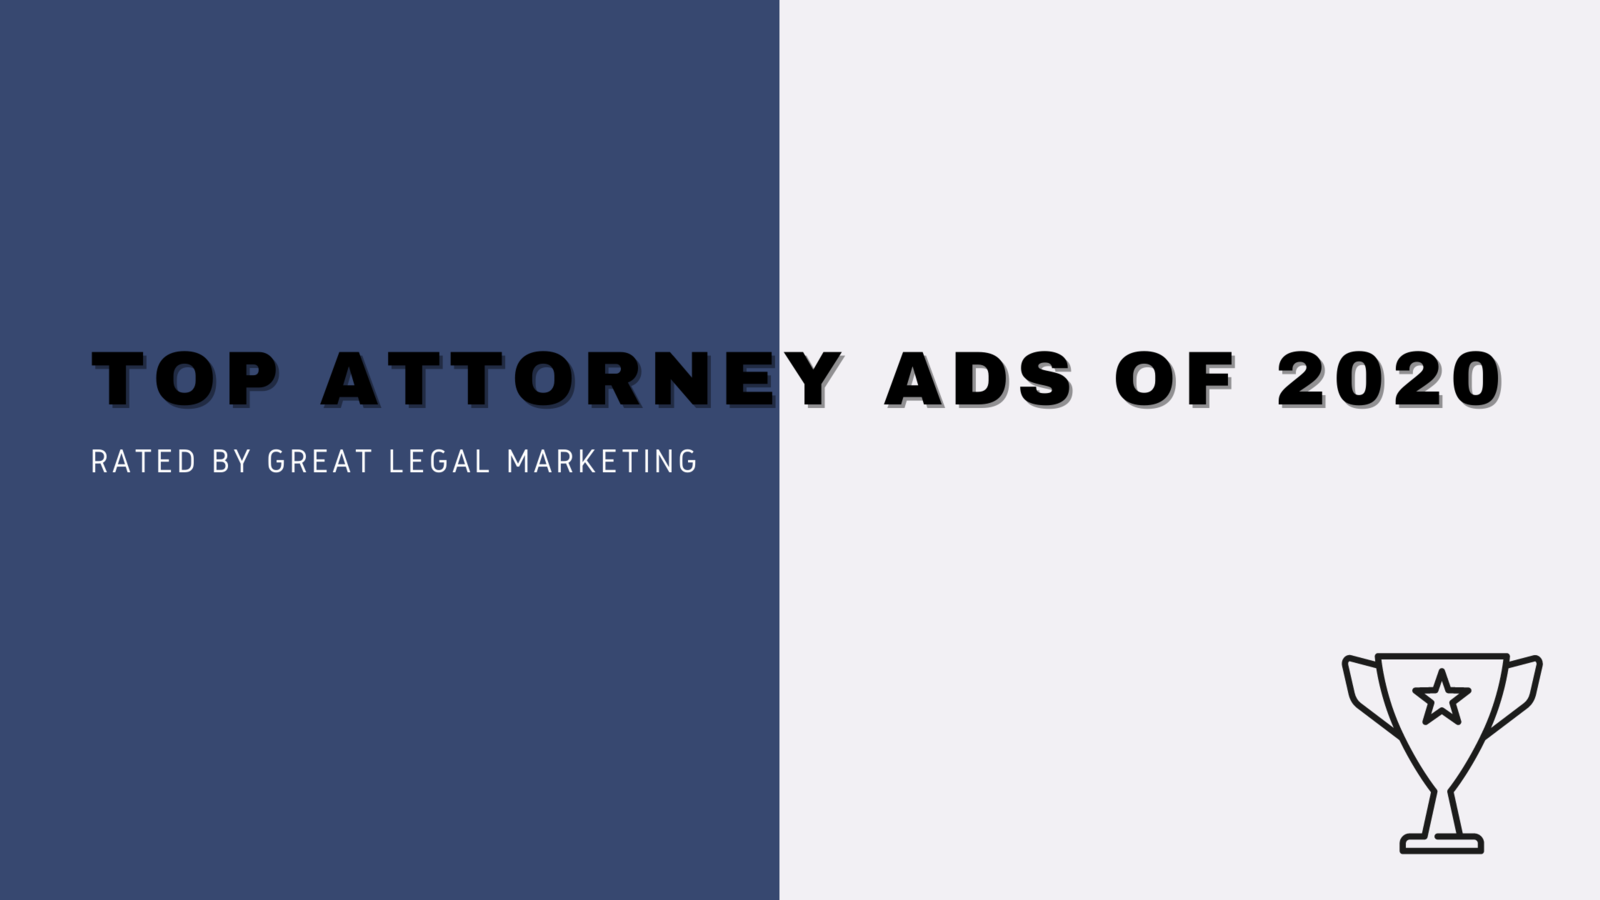 Top Attorney Ads in 2020